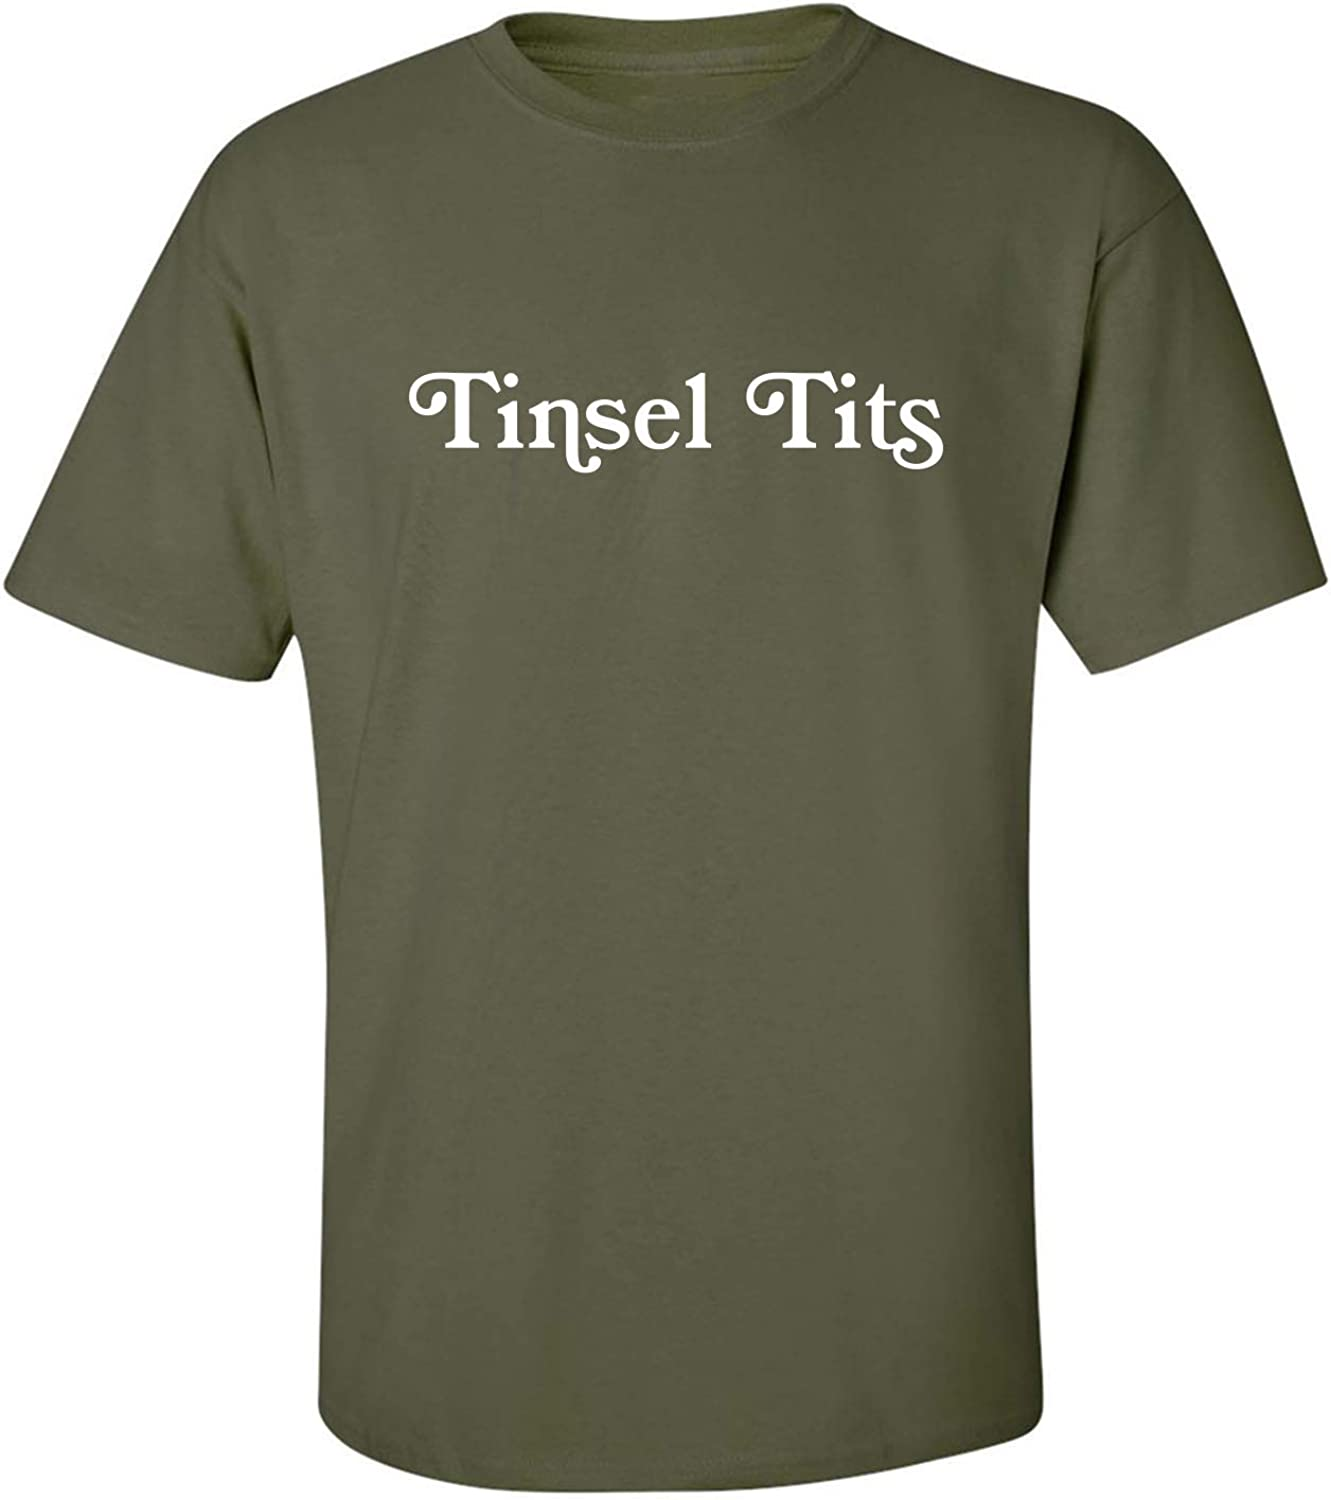 Tinsel Tits Adult T-Shirt in Military Green - XXXXX-Large